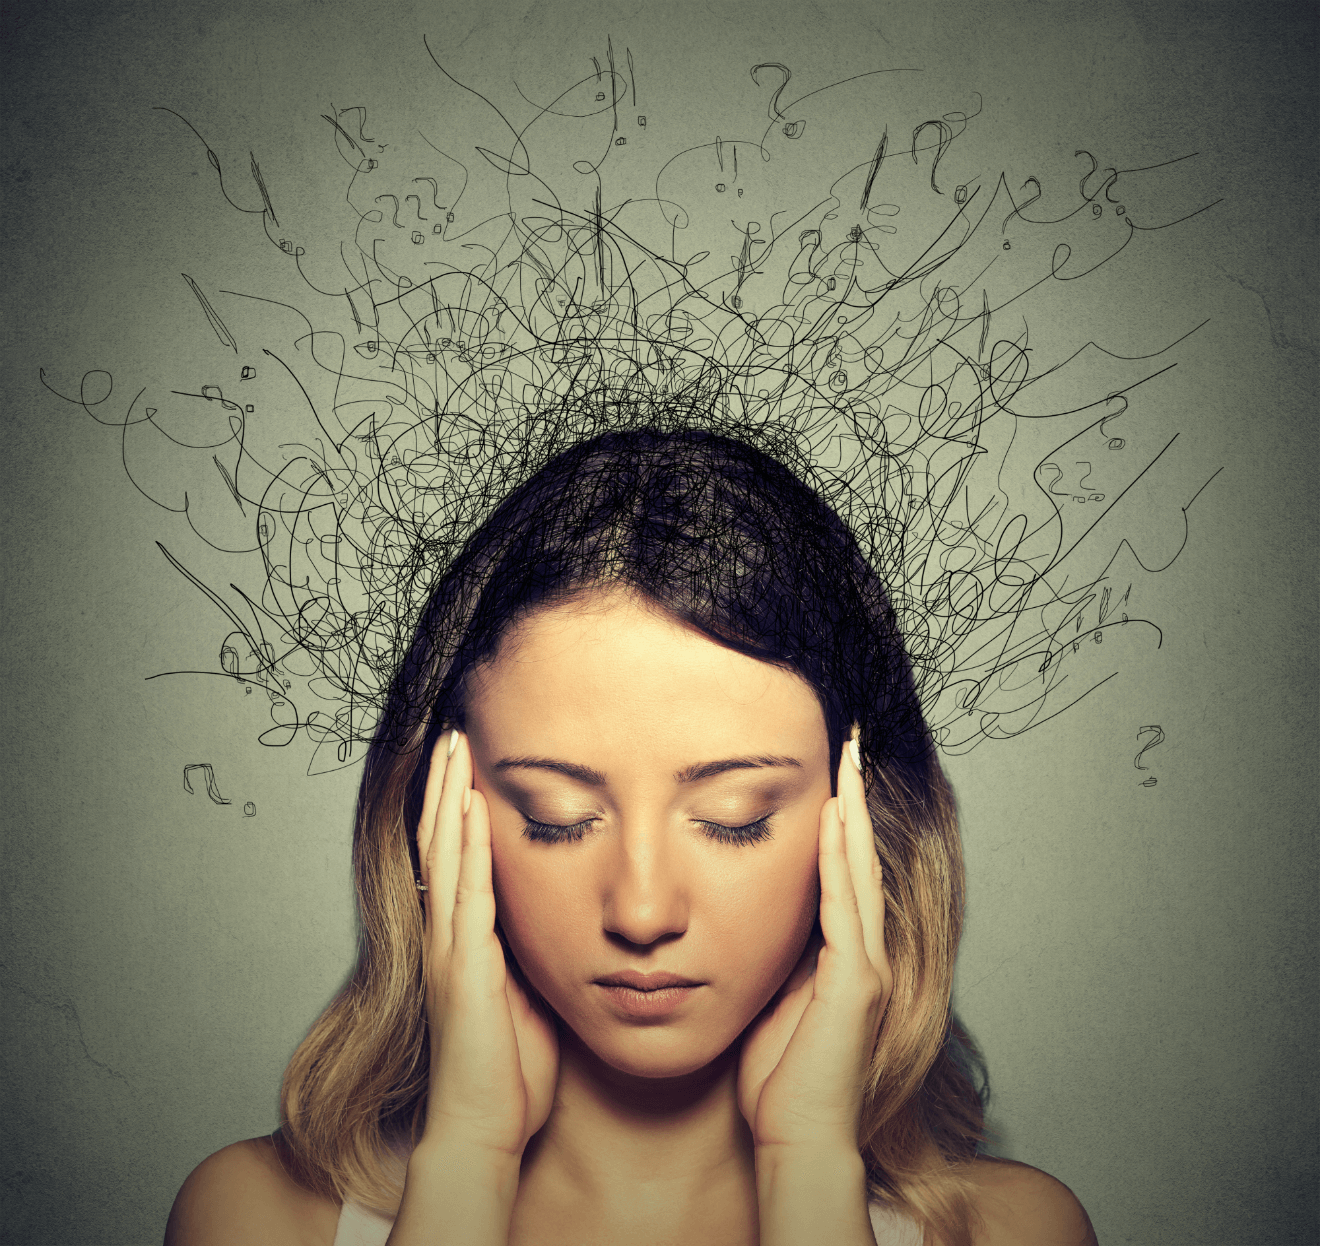 ocd woman stressed out thoughts buzzing around her head